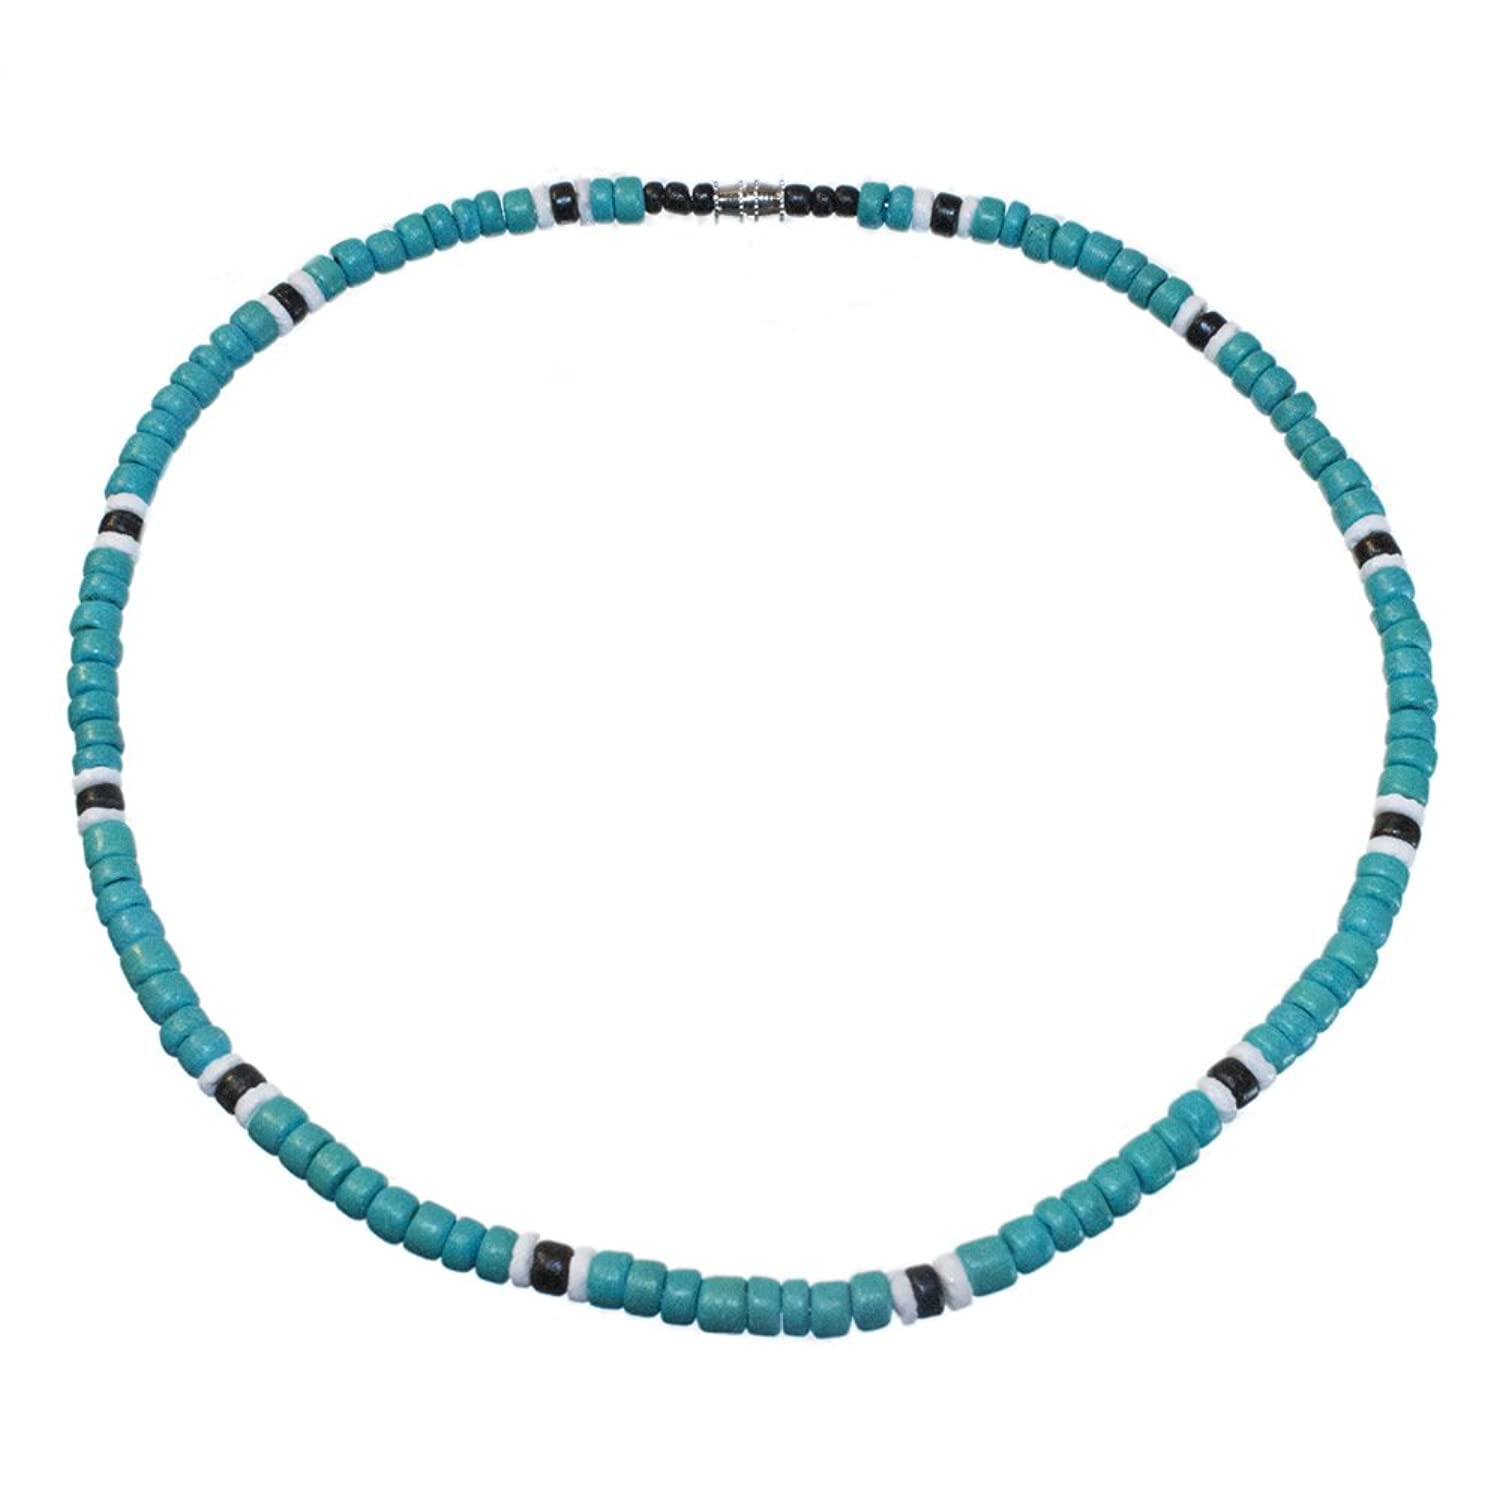 Aqua and Black Coco Bead Hawaiian Surfer Necklace with White Puka Shell Accents, Barrel Lock